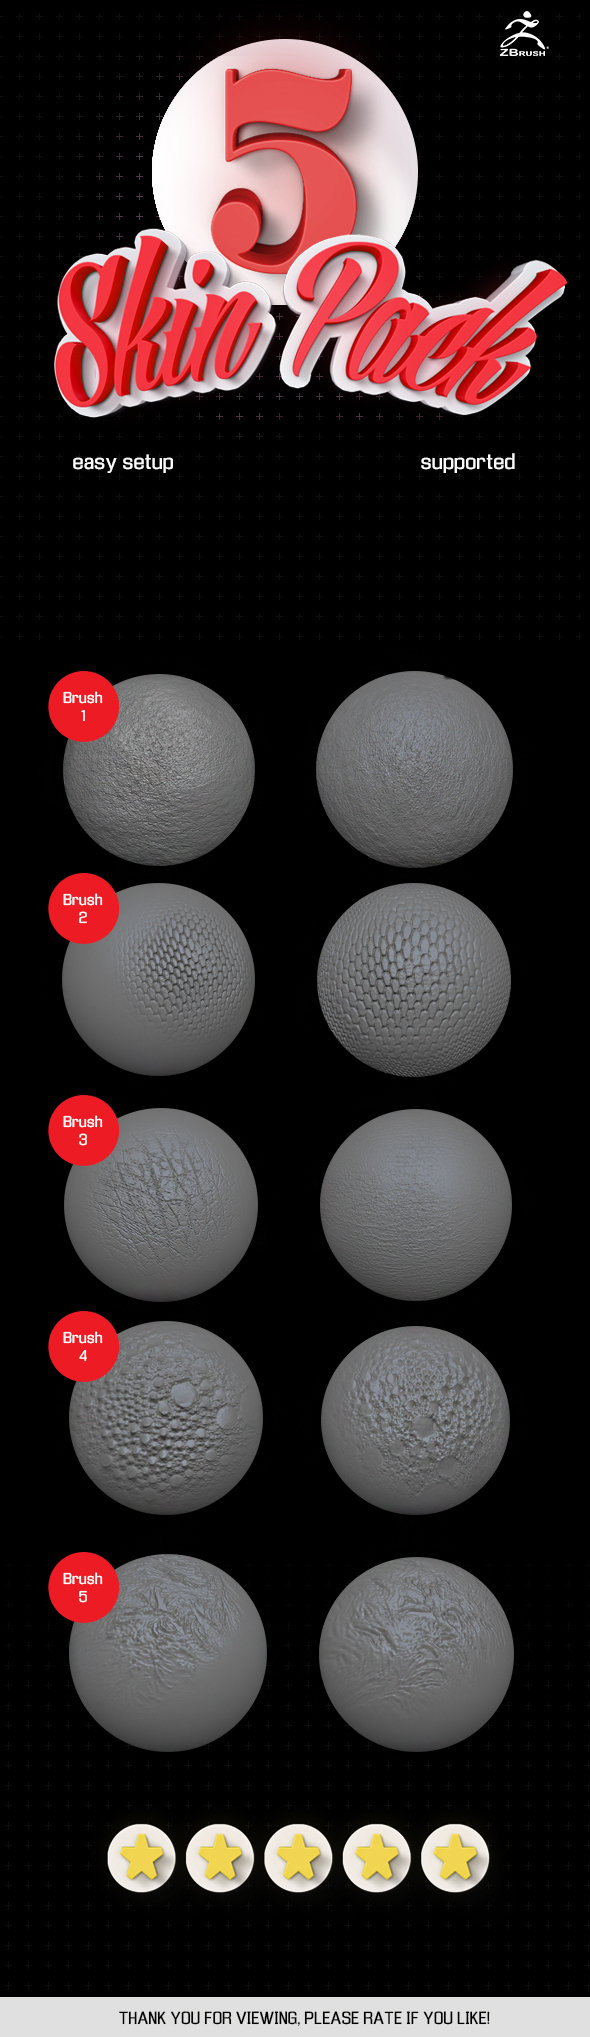 5 Skin brush pack ZBrush vol.1